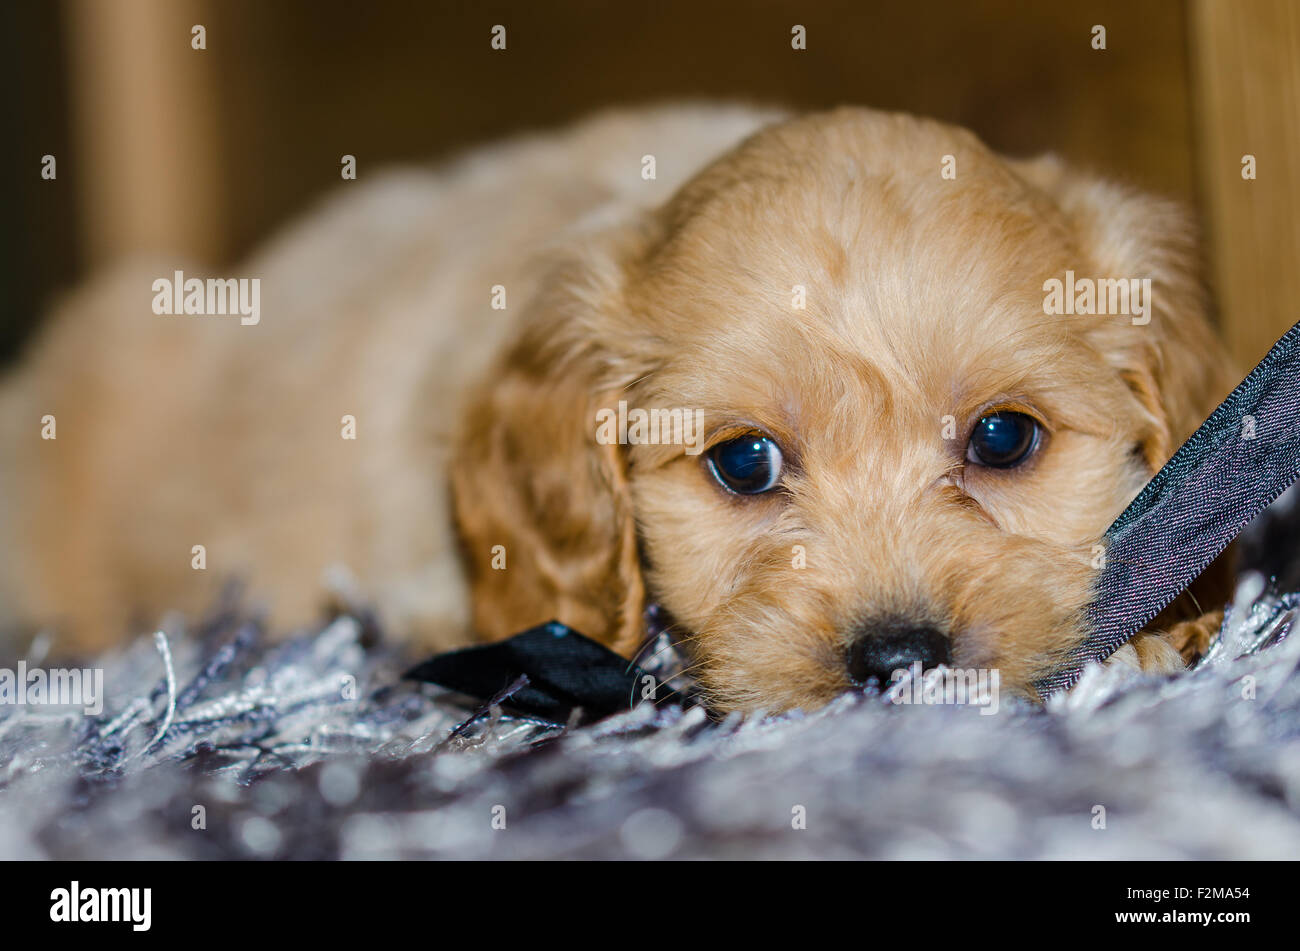 Cute puppy lying on a rug - Stock Image